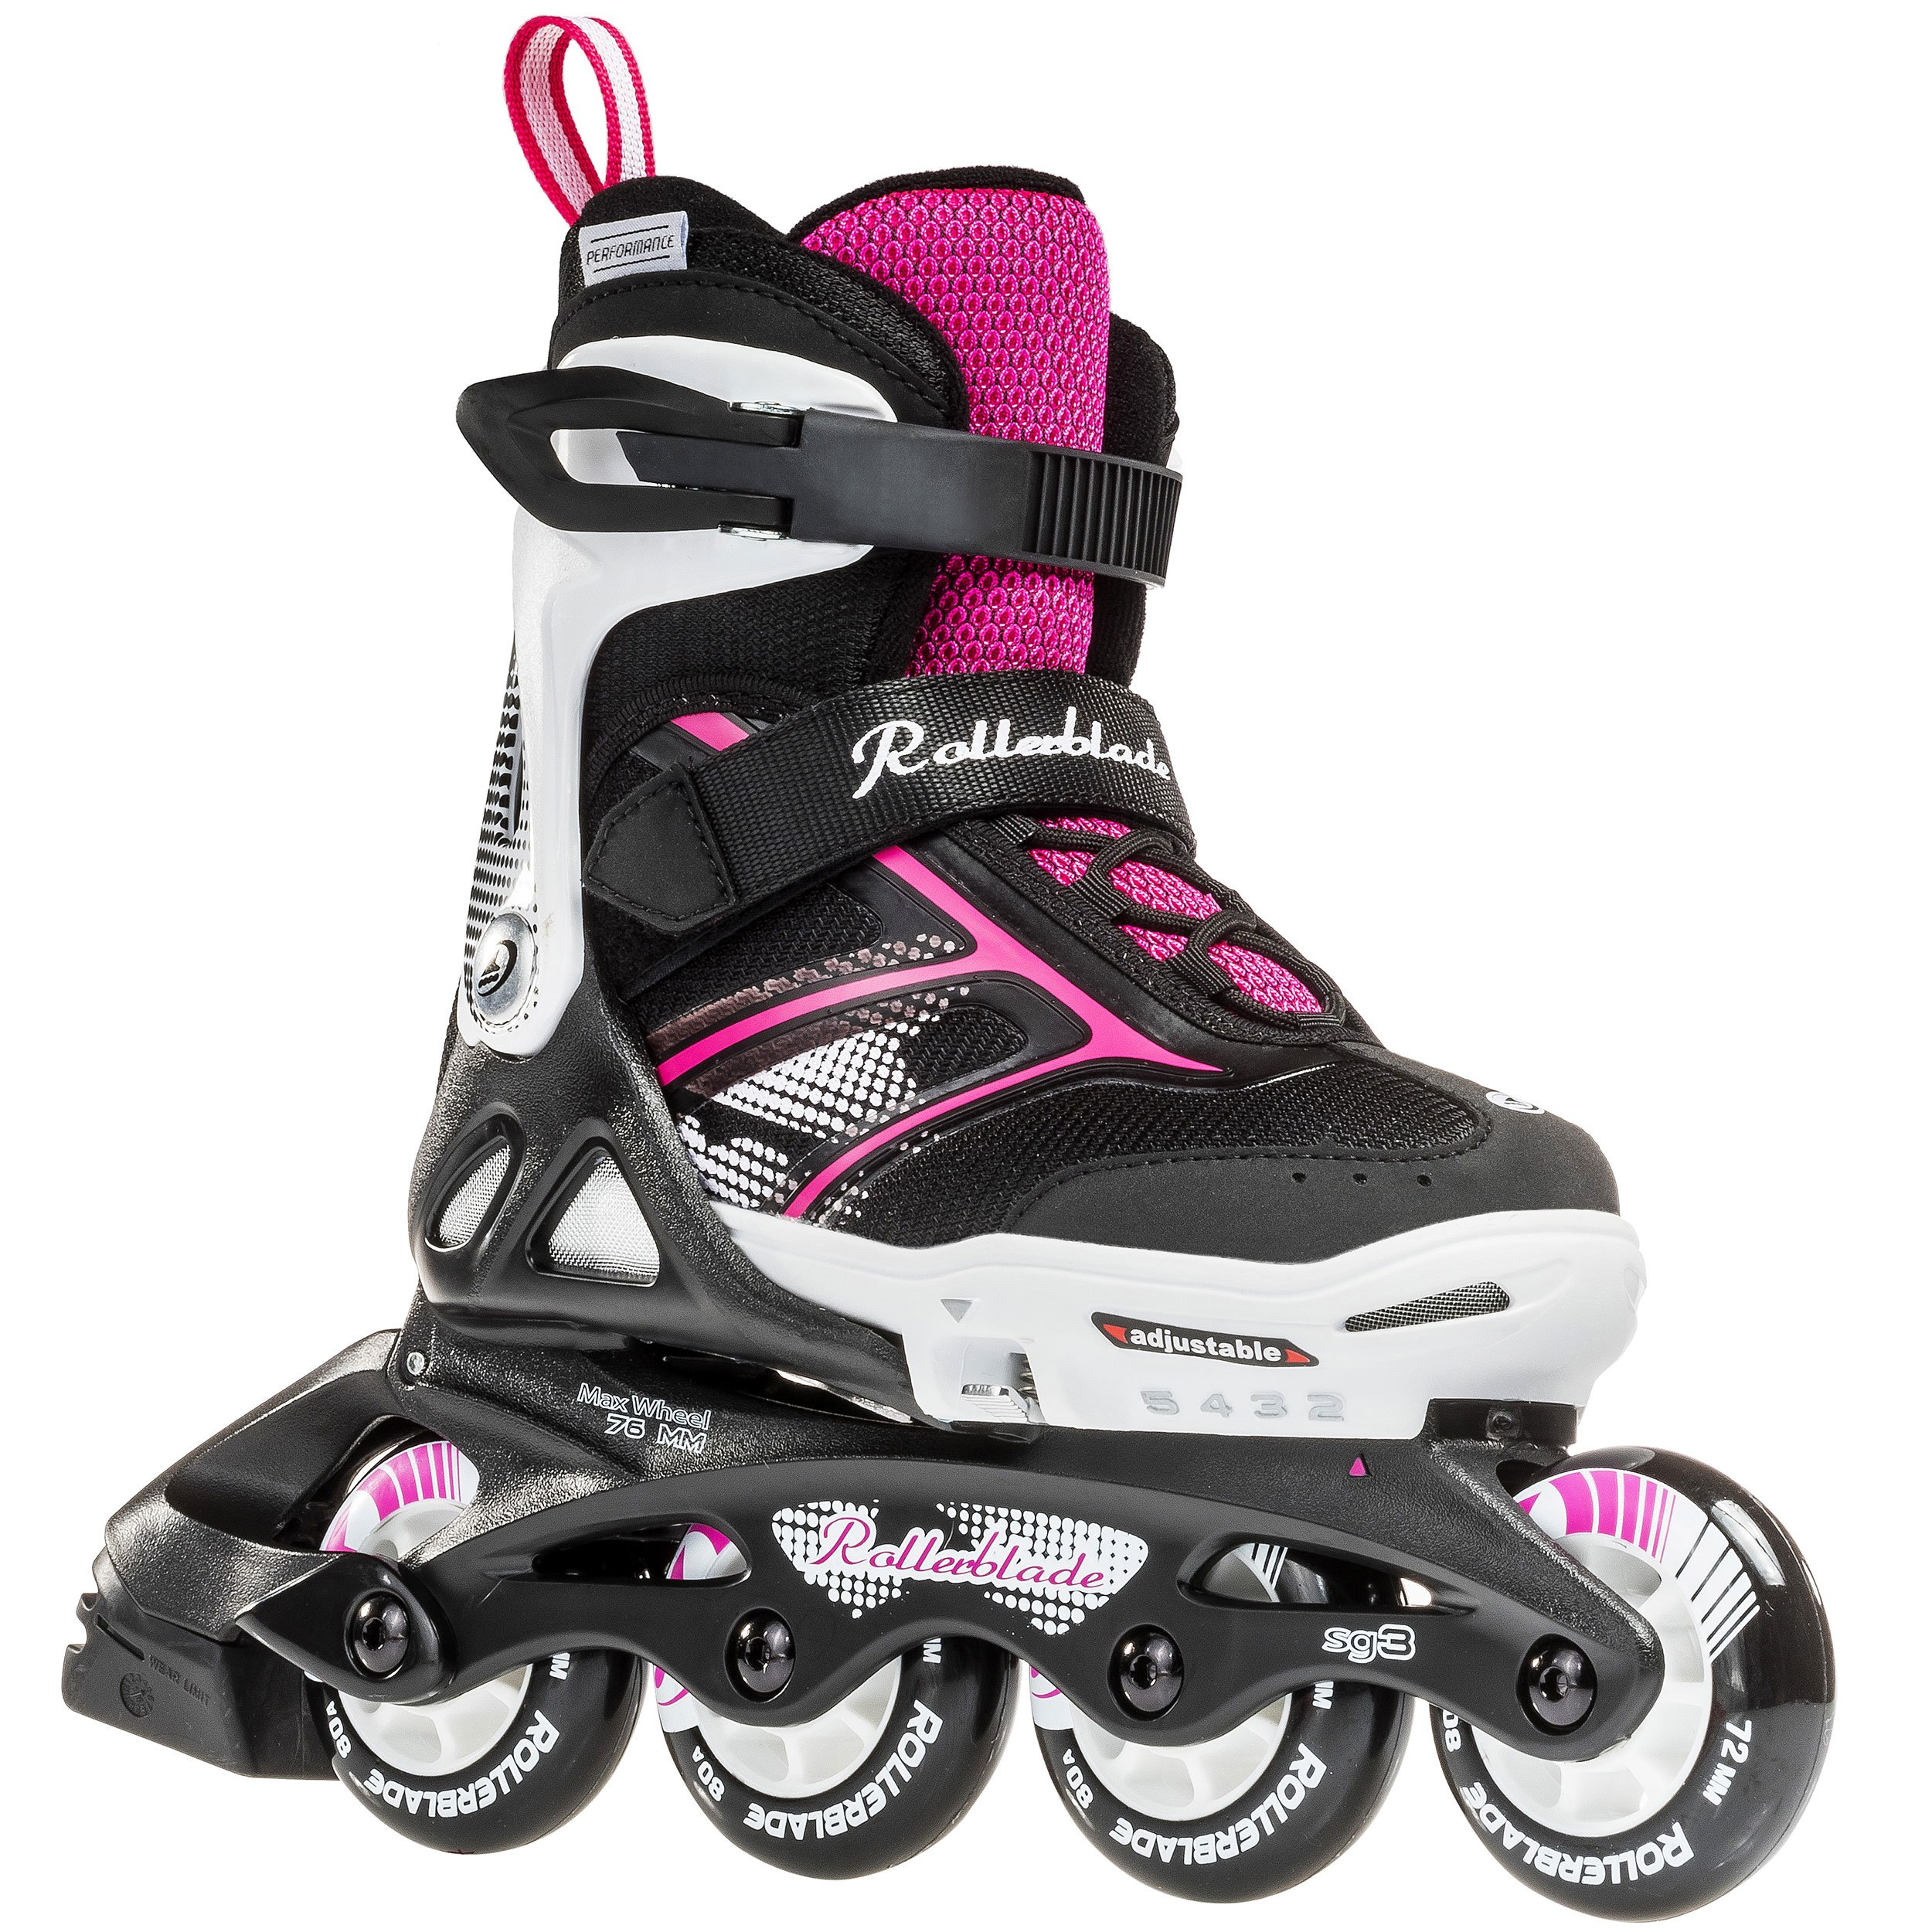 Rollerblade Girls Spitfire JR XTG 2016 Kids Skate, Black/Pink, Adjustable (11 J to 1) by Rollerblade